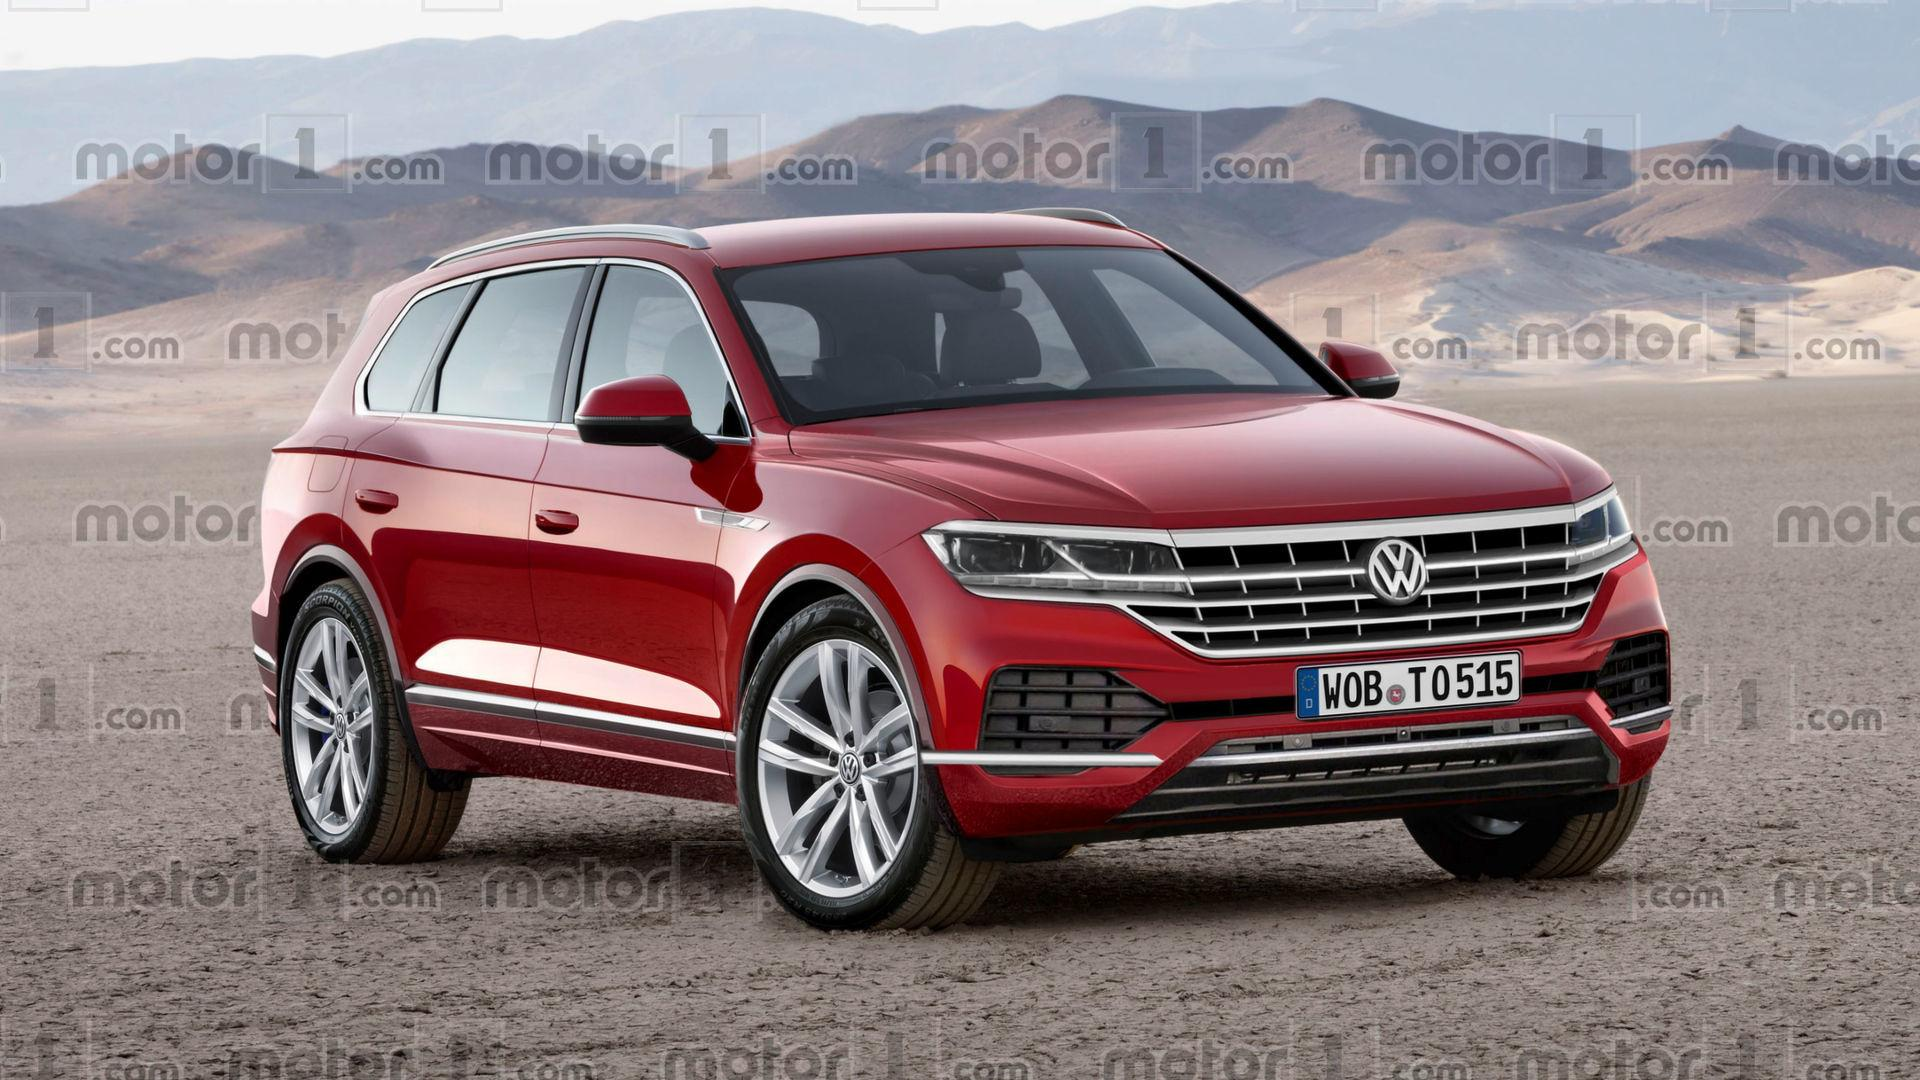 Vw Of America >> Vw Allegedly Making Small Crossover Specifically For America